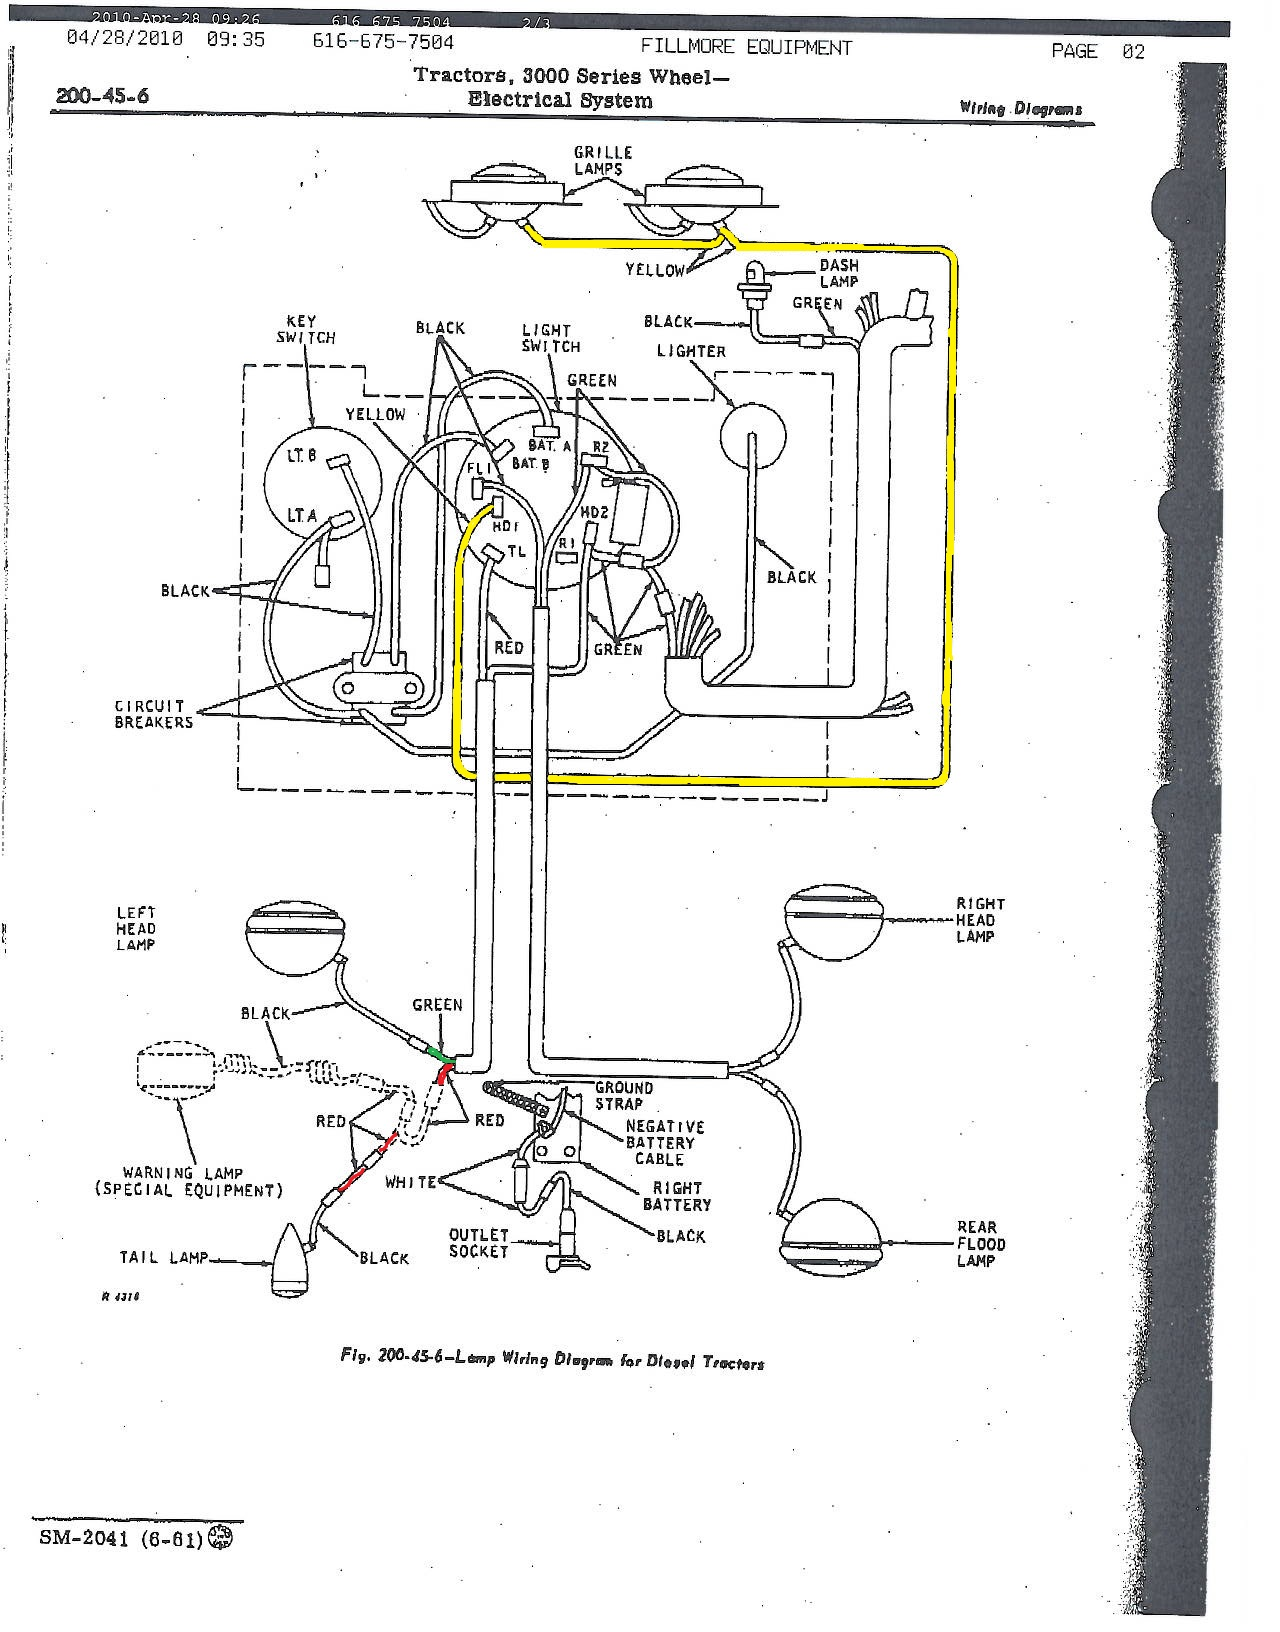 john deere 2240 wiring diagram light john deere light switch diagram john deere 3010 starter switch wiring diagram #8